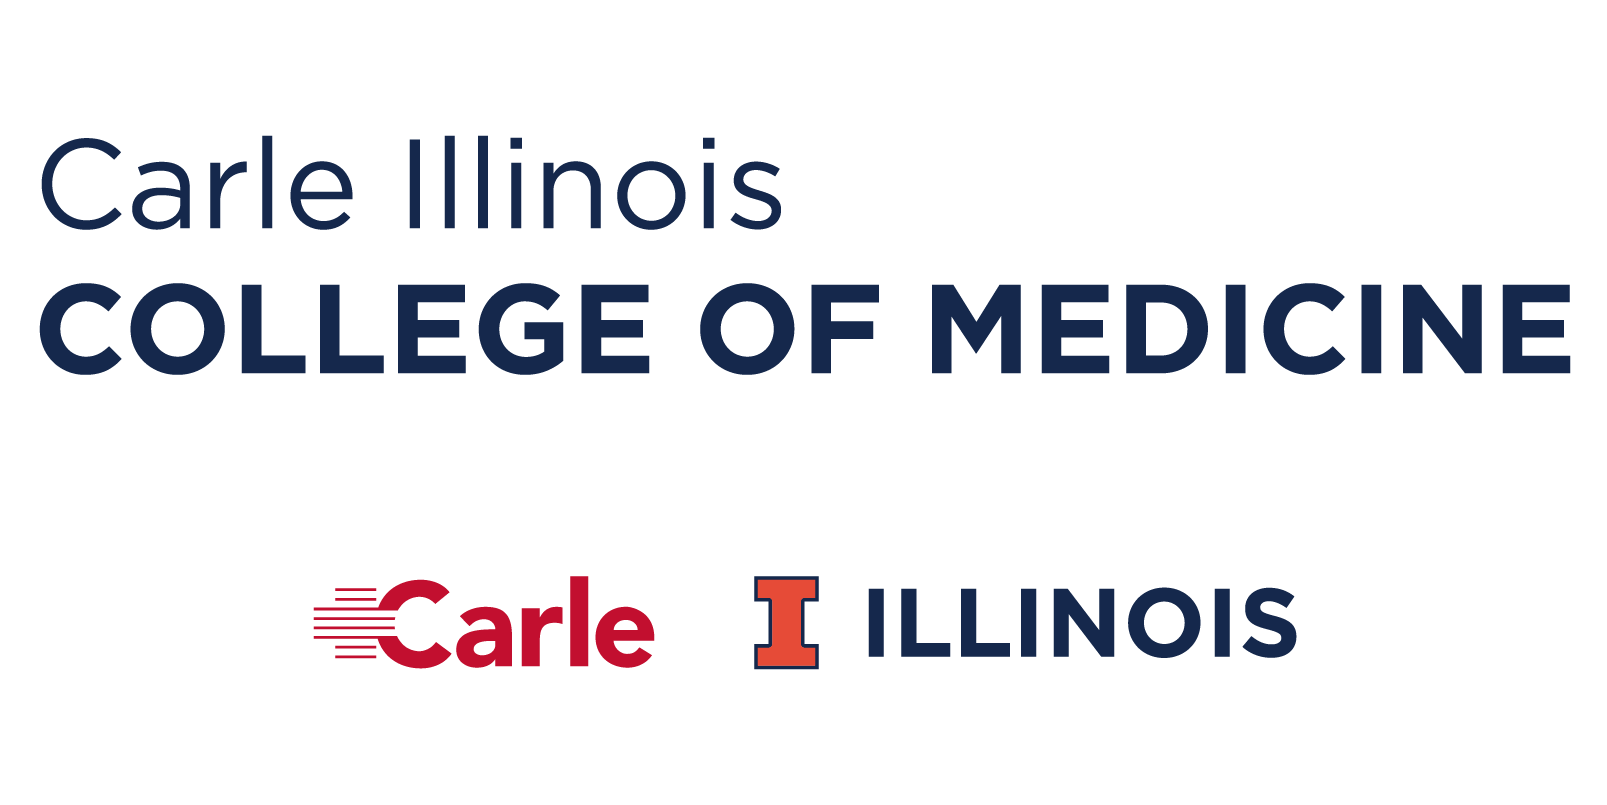 Carle Illinois College of Medicine